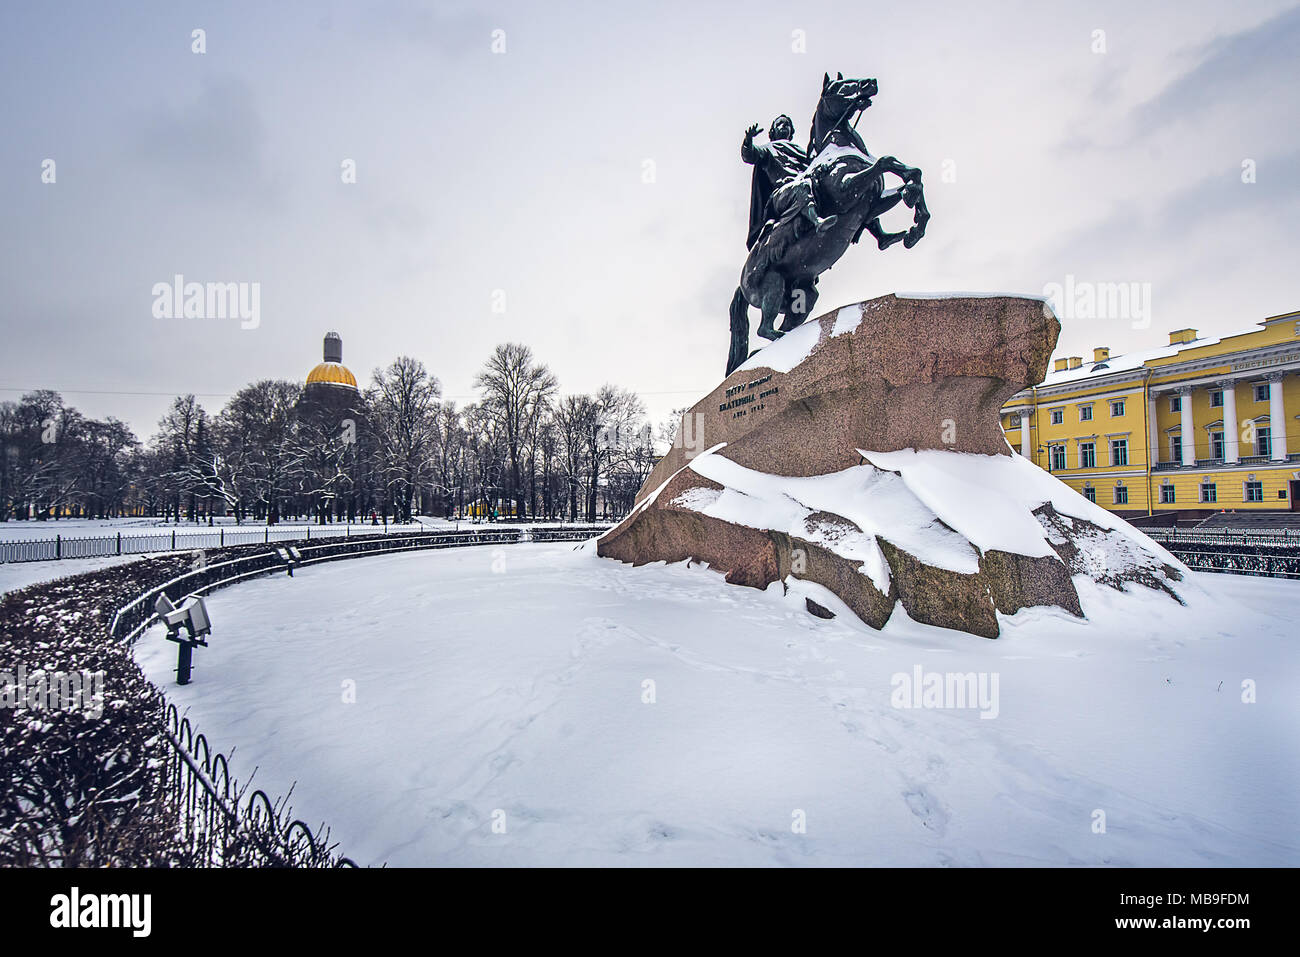 Peter the great statue with St Isaac Cathedral at background in a snowy scene. St Petersburg, Russia - Stock Image